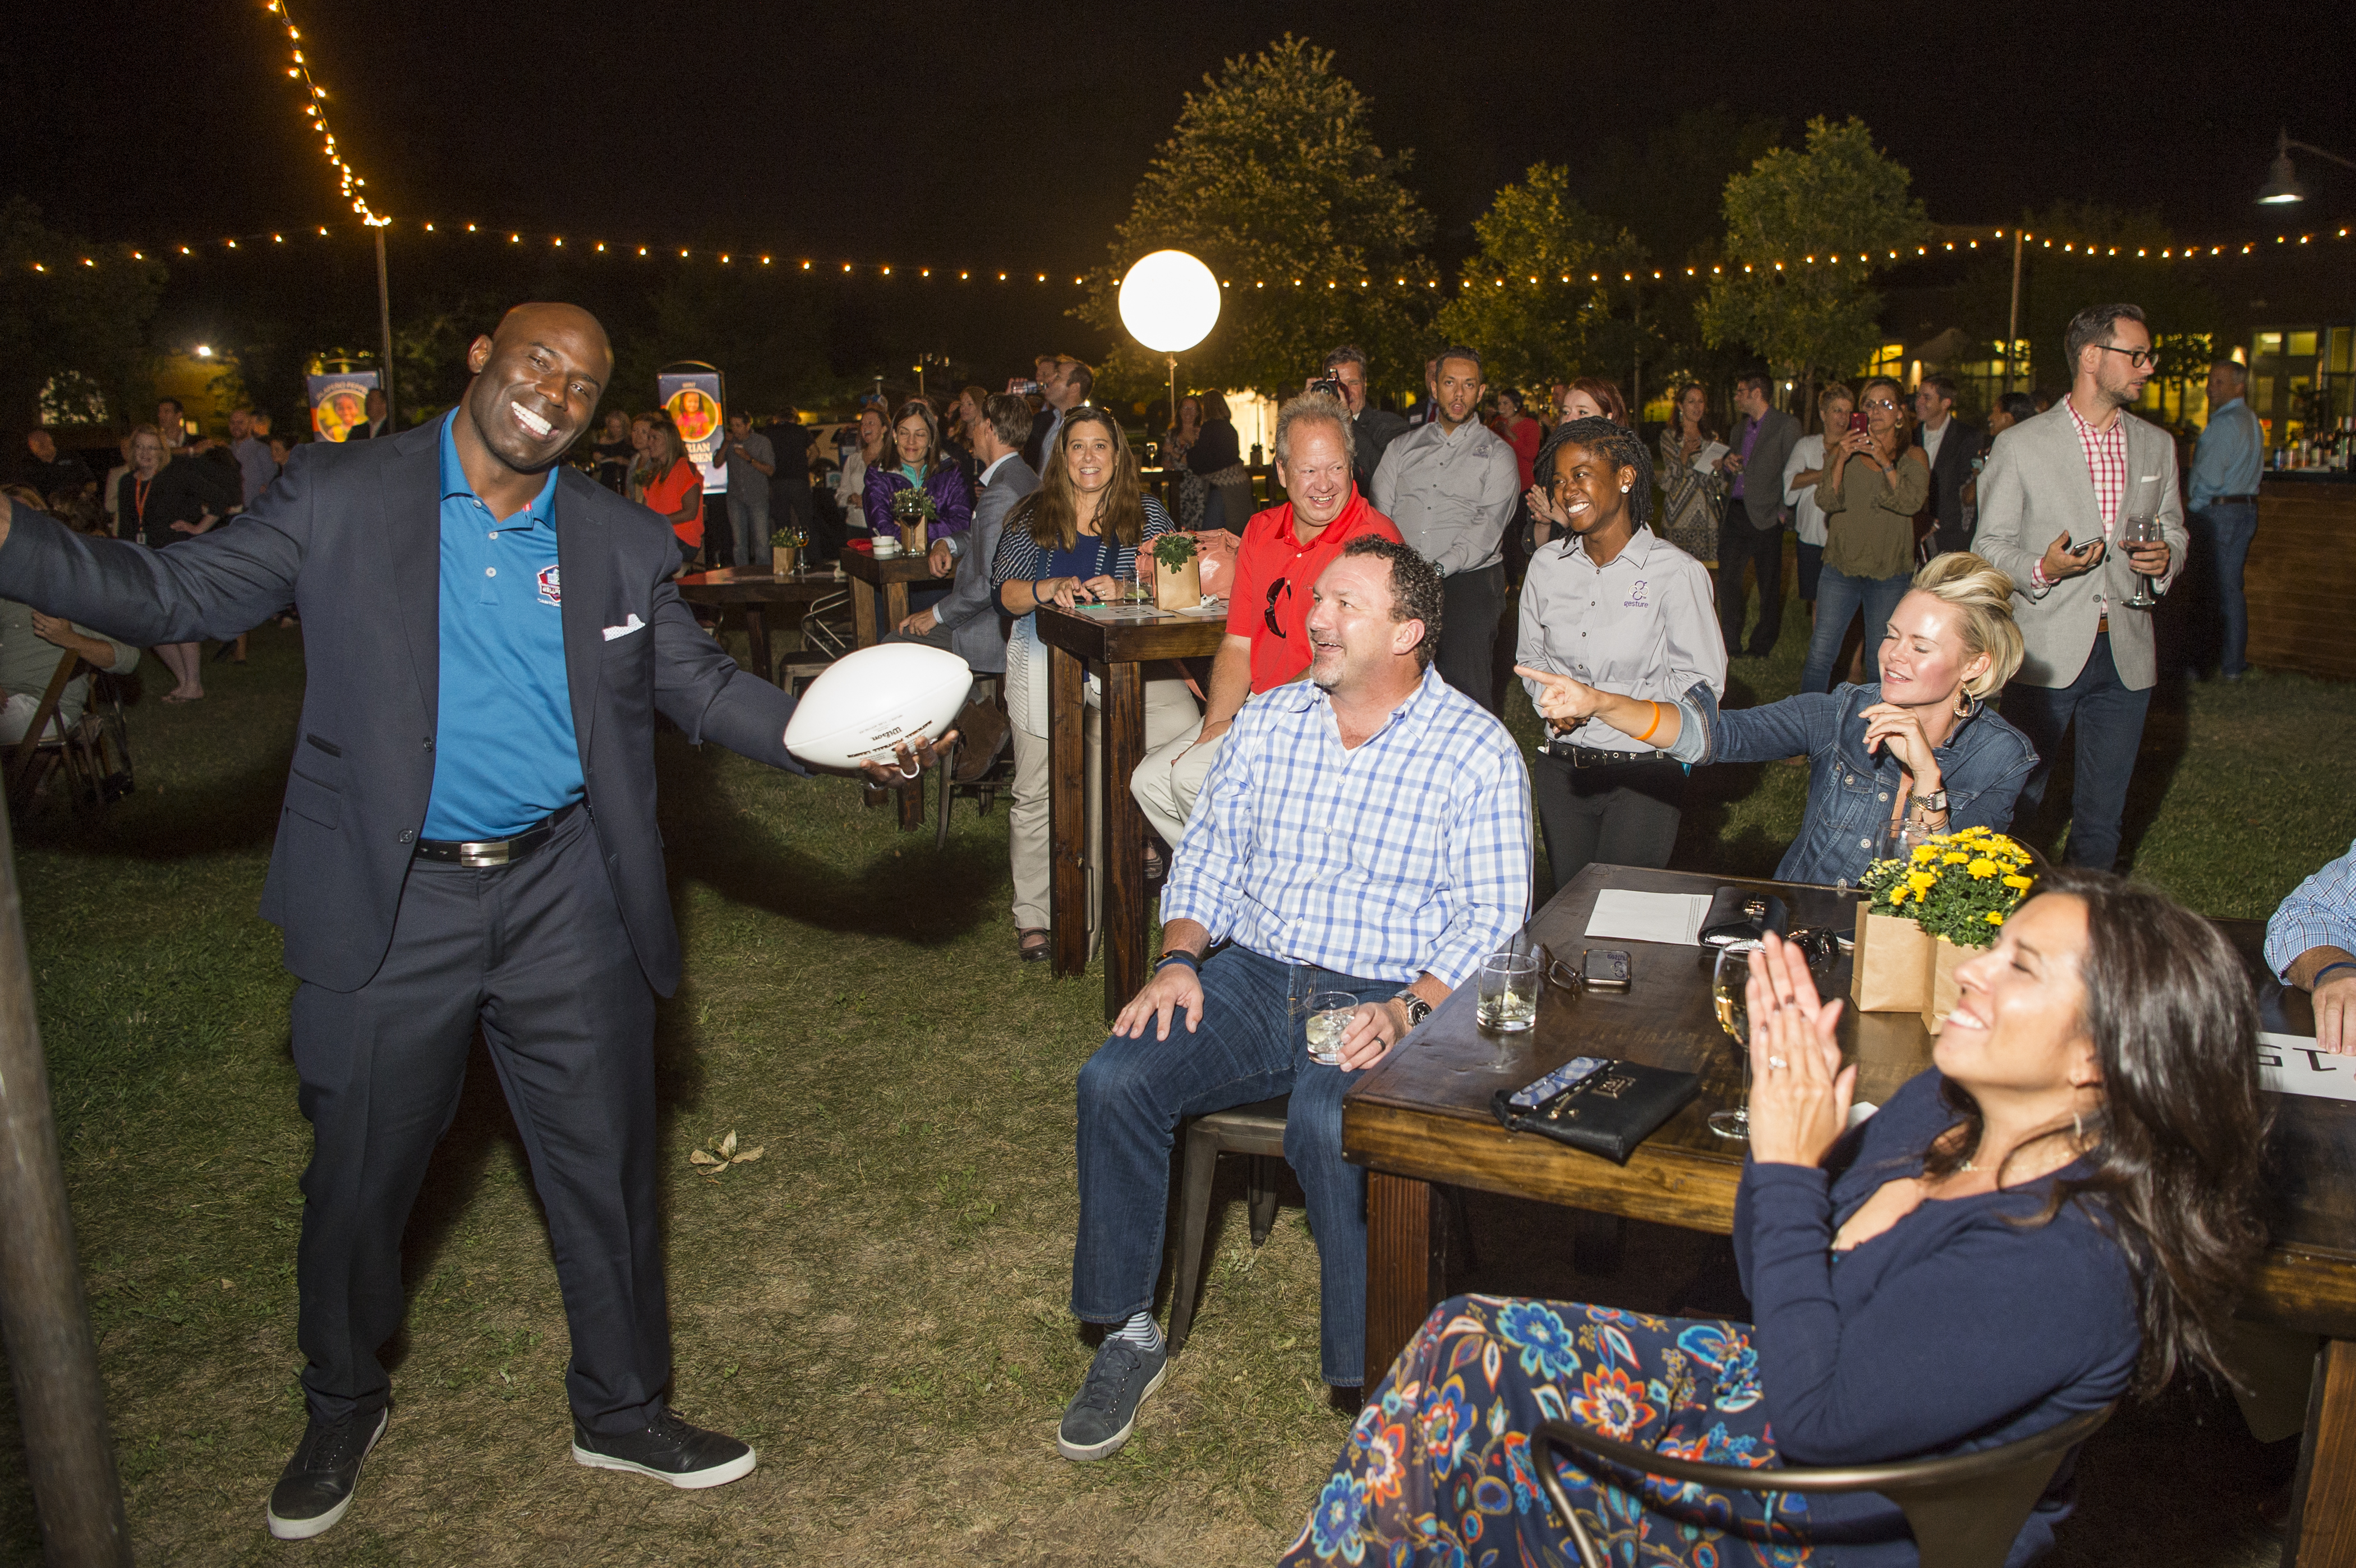 Terrell Davis has fun with guests at Moonbeam Harvest